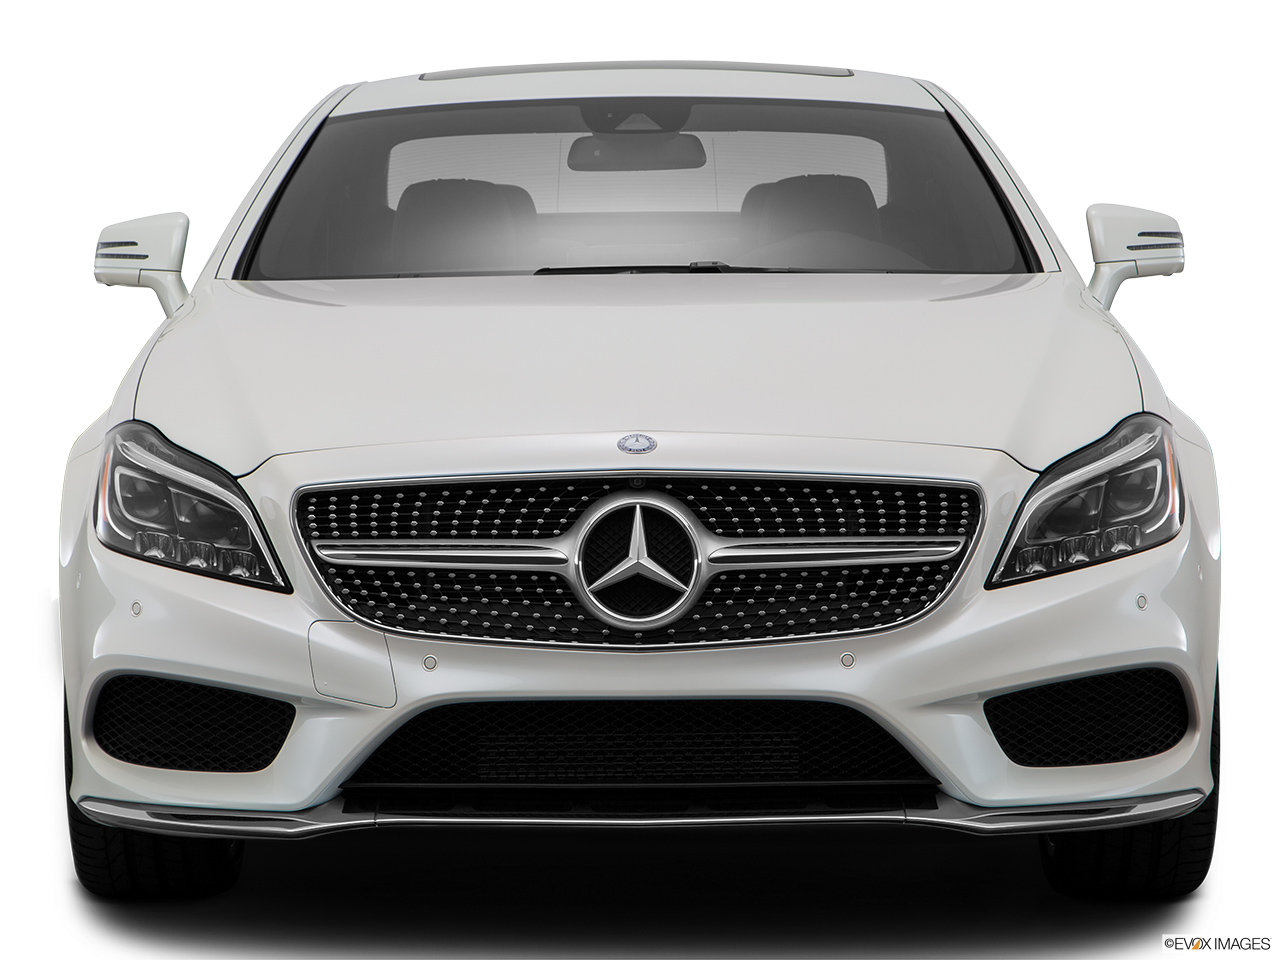 Car pictures list for mercedes benz cls class 2016 cls 500 for Mercedes benz list